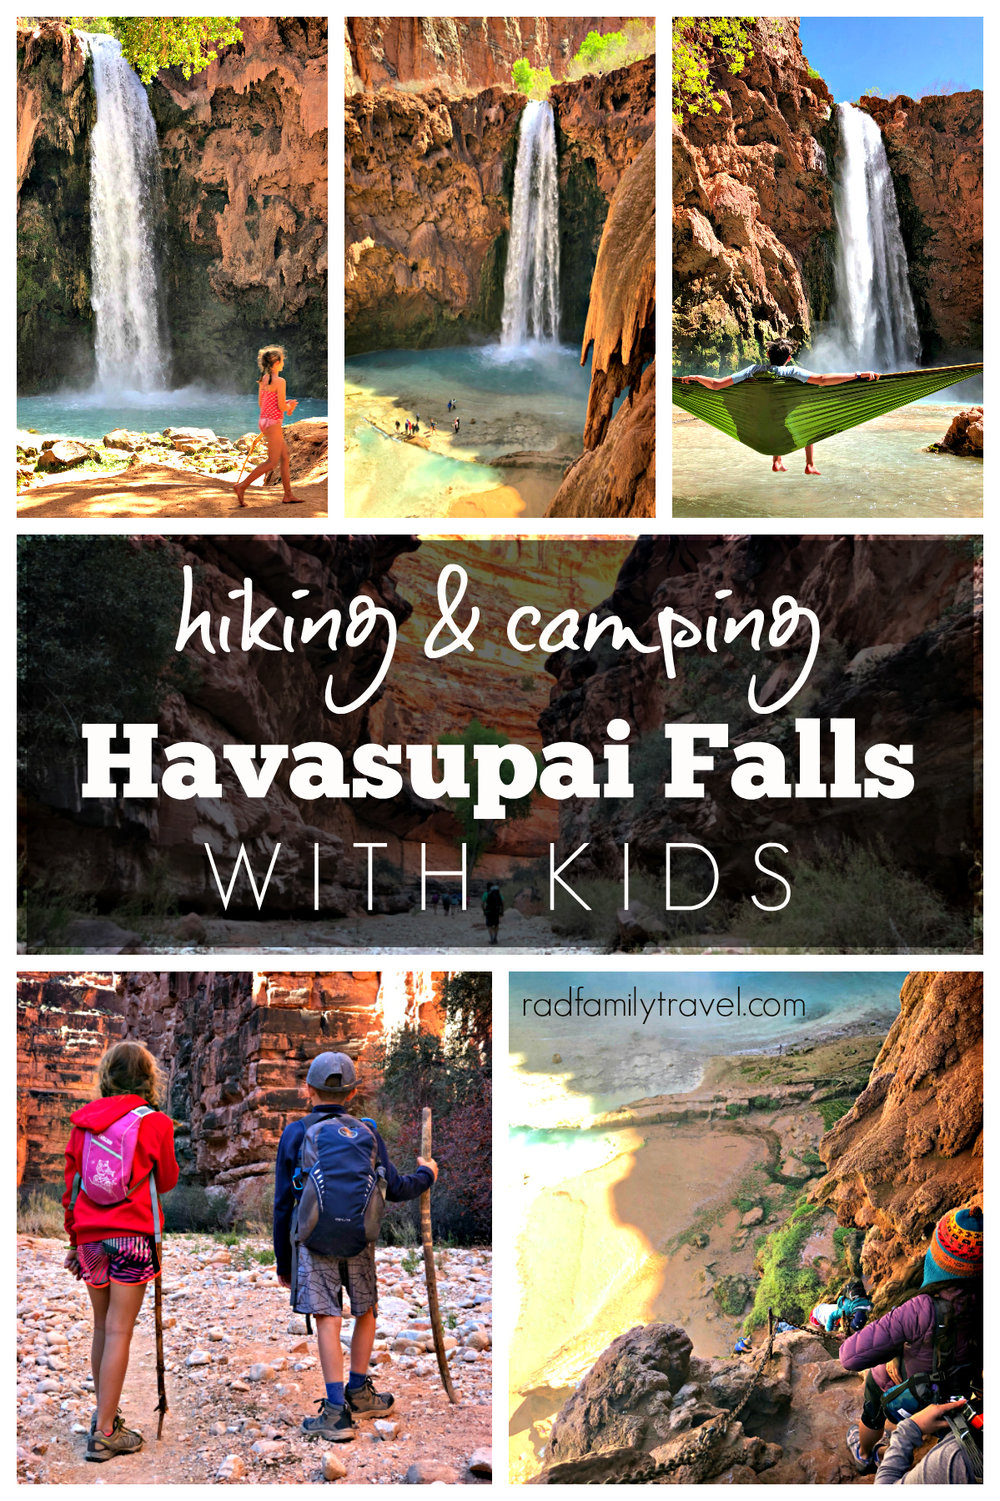 havasupai falls with kids